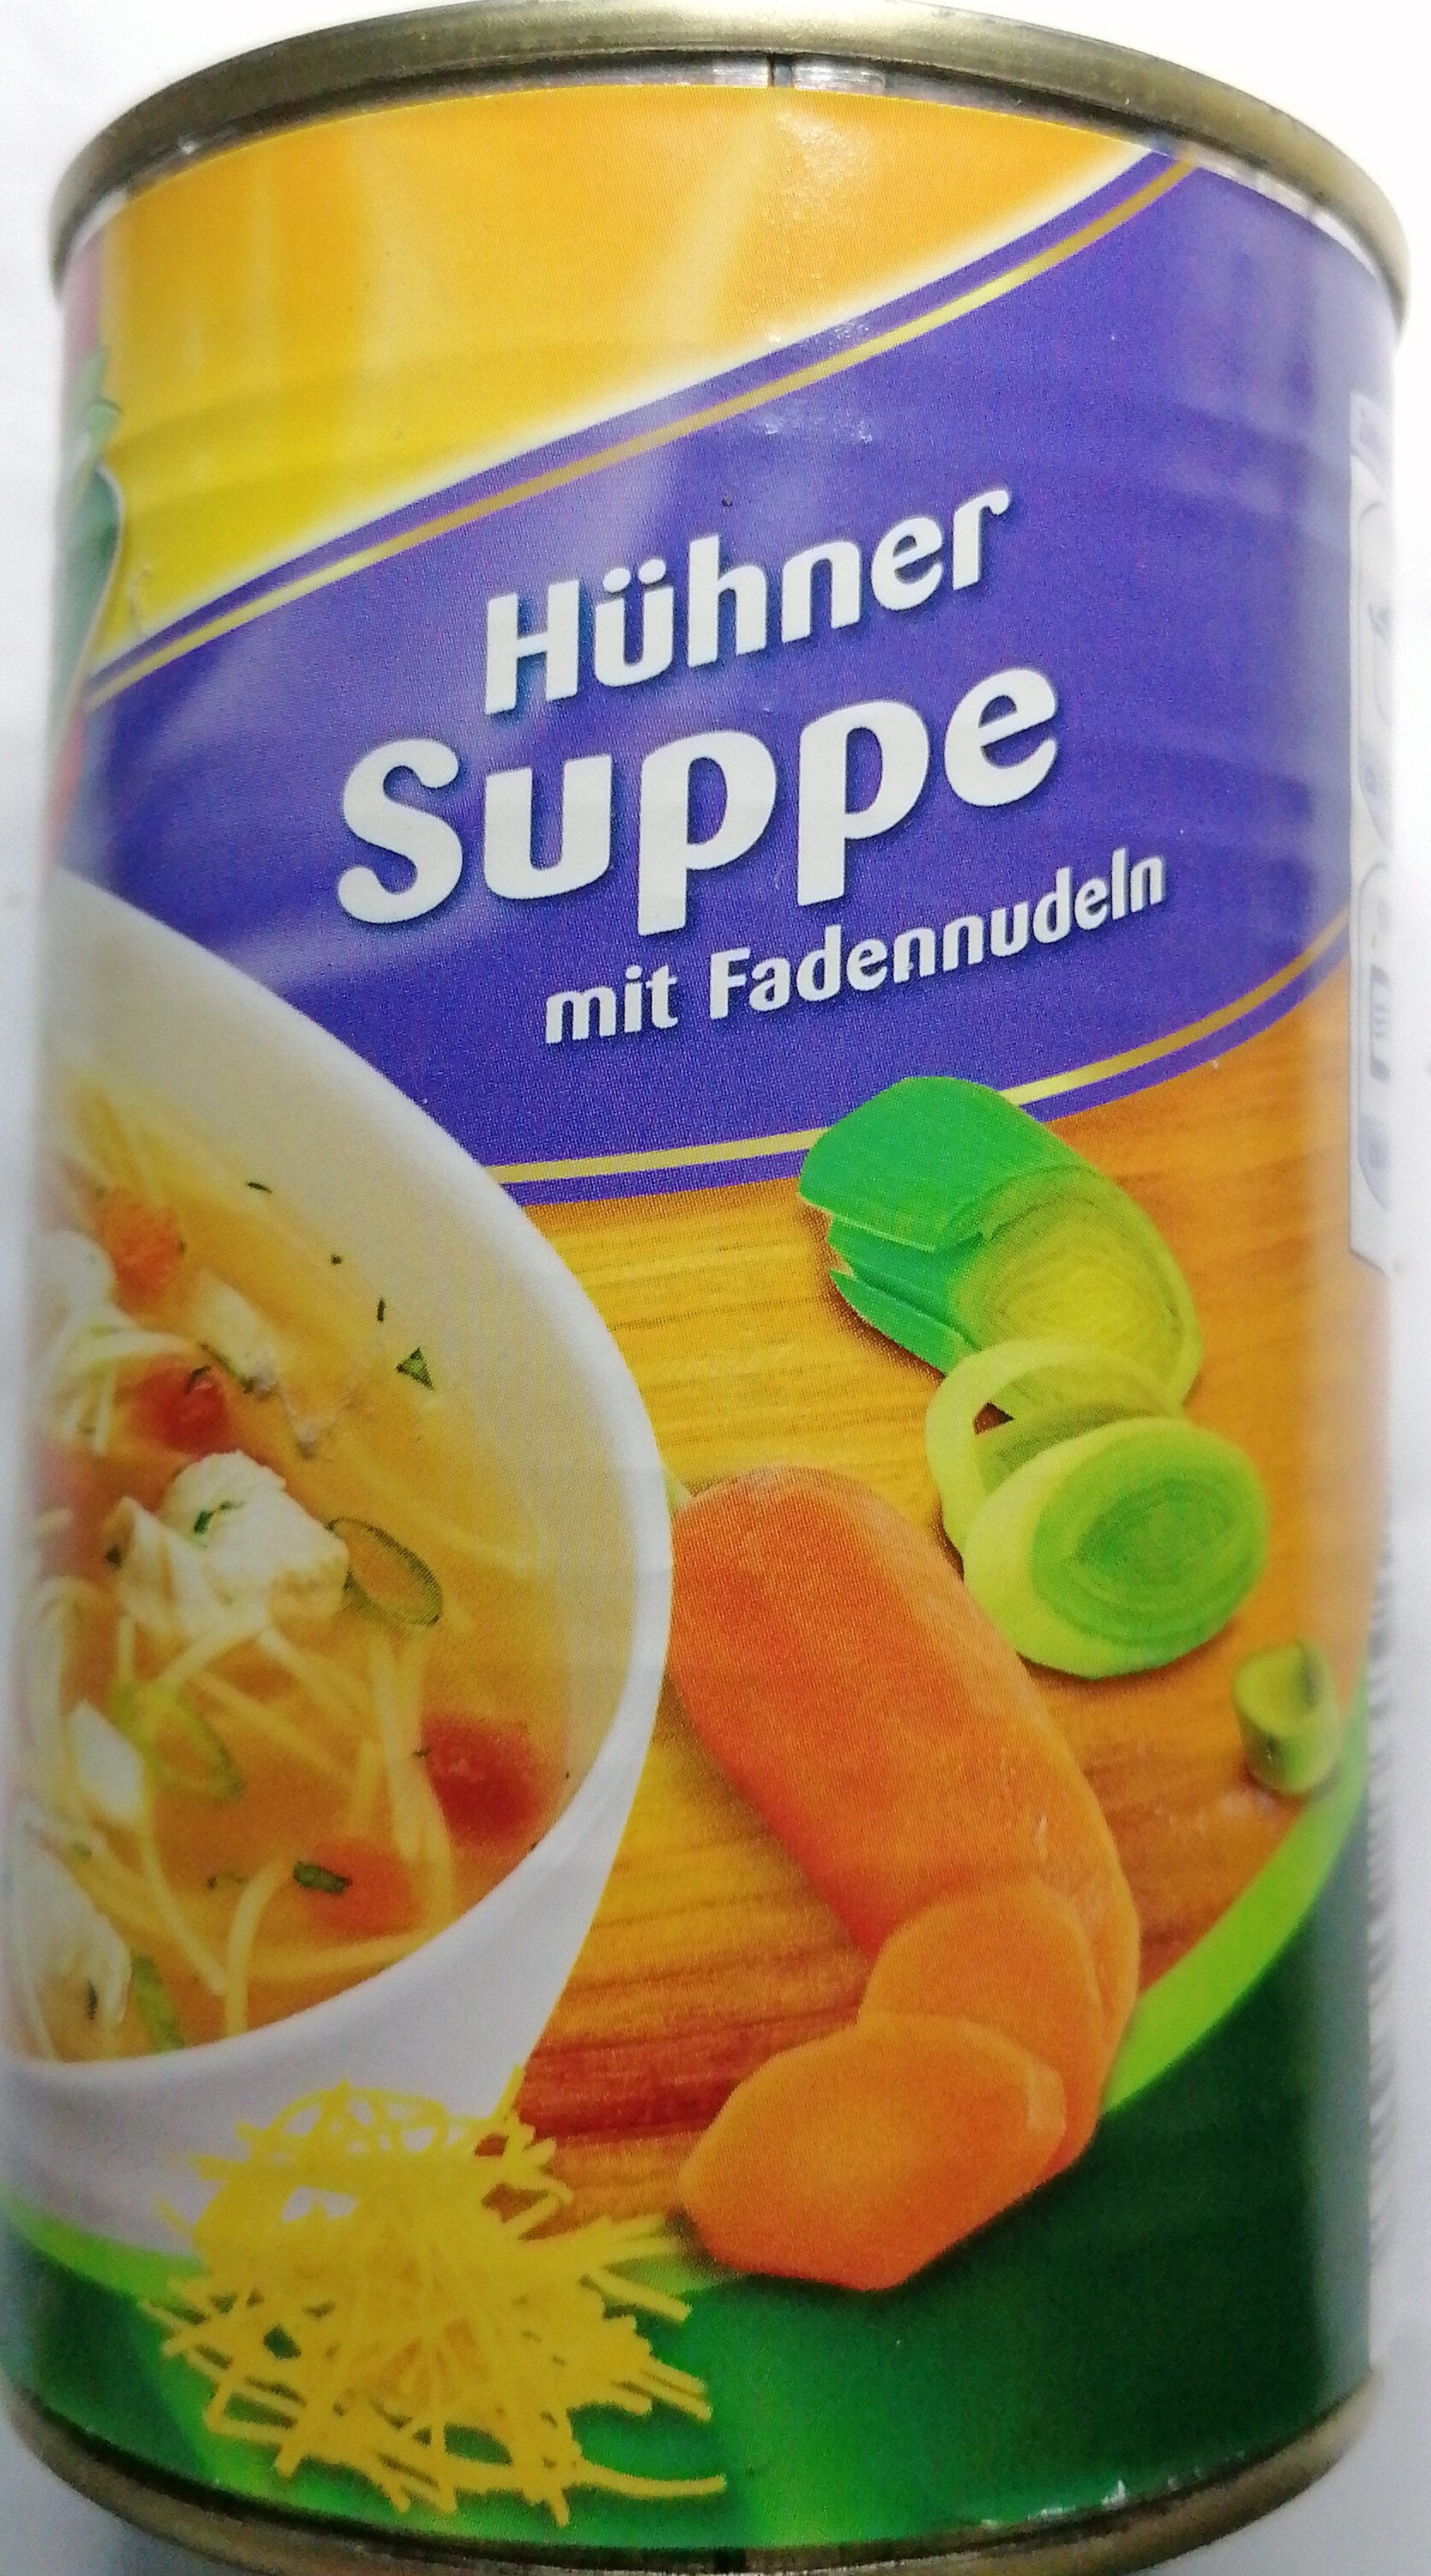 Hühnersuppe mit Fadennudeln - Product